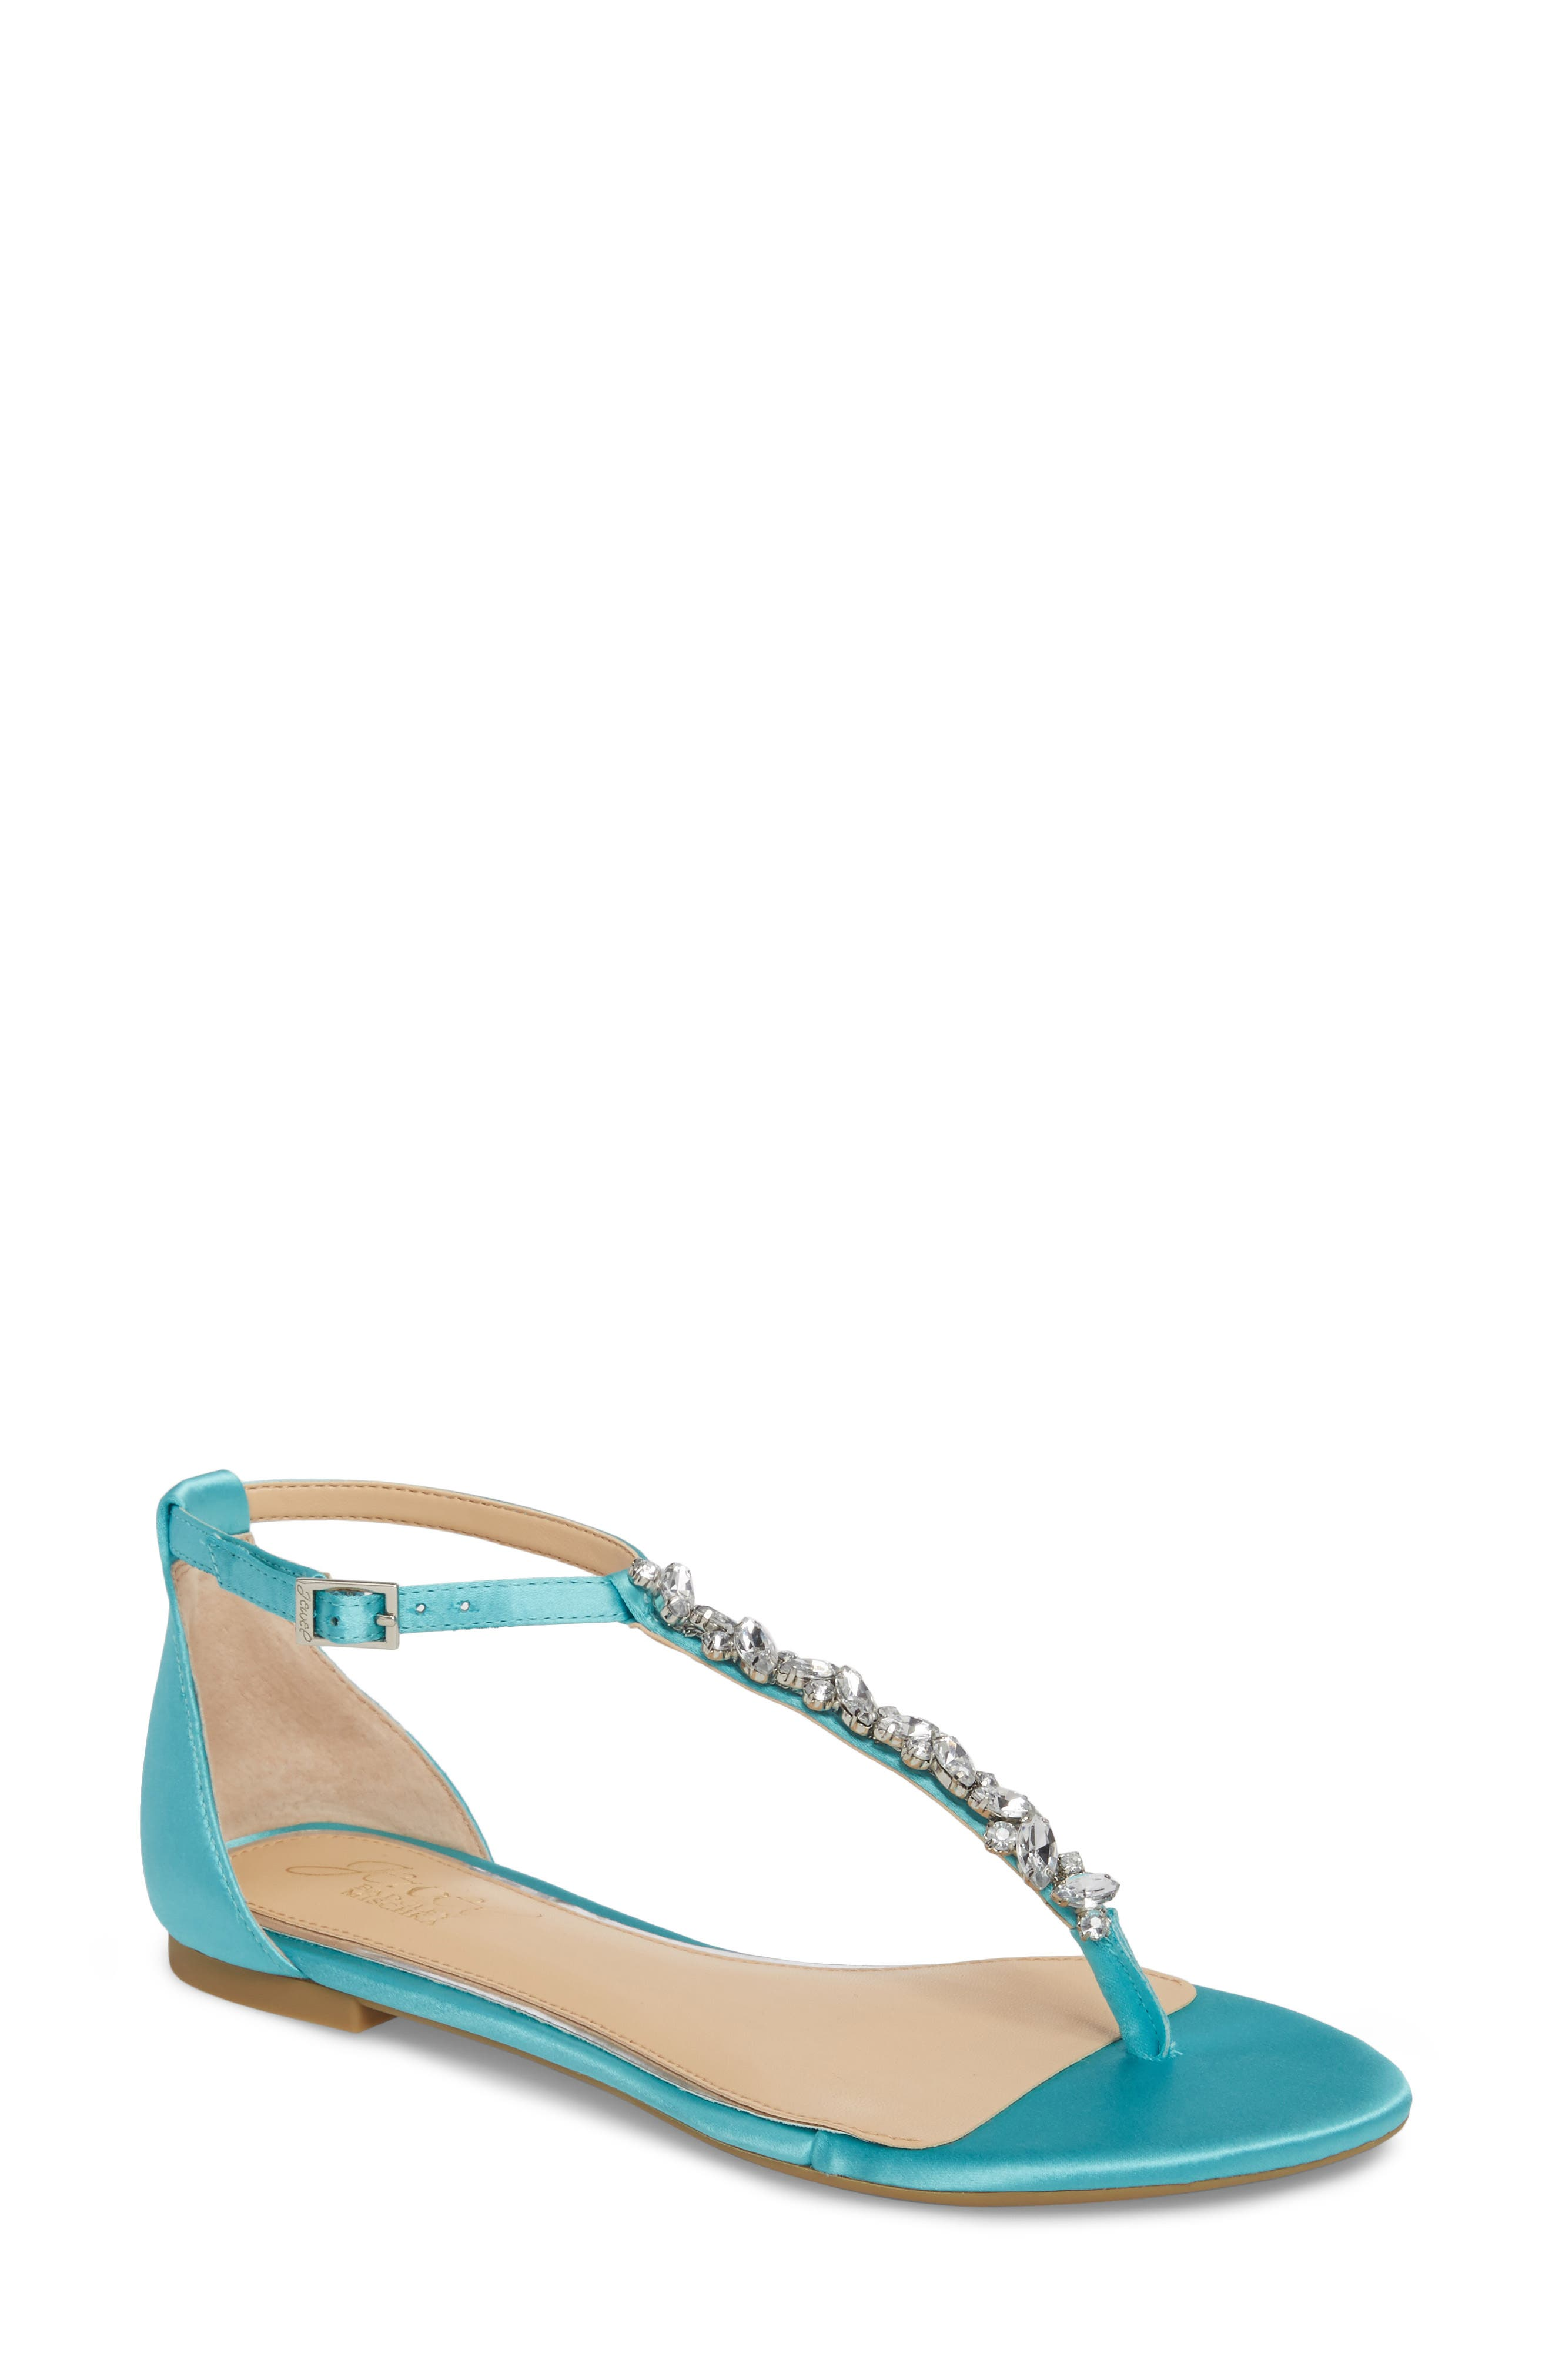 Carrol Embellished T-Strap Sandal,                             Main thumbnail 1, color,                             Turquoise Satin